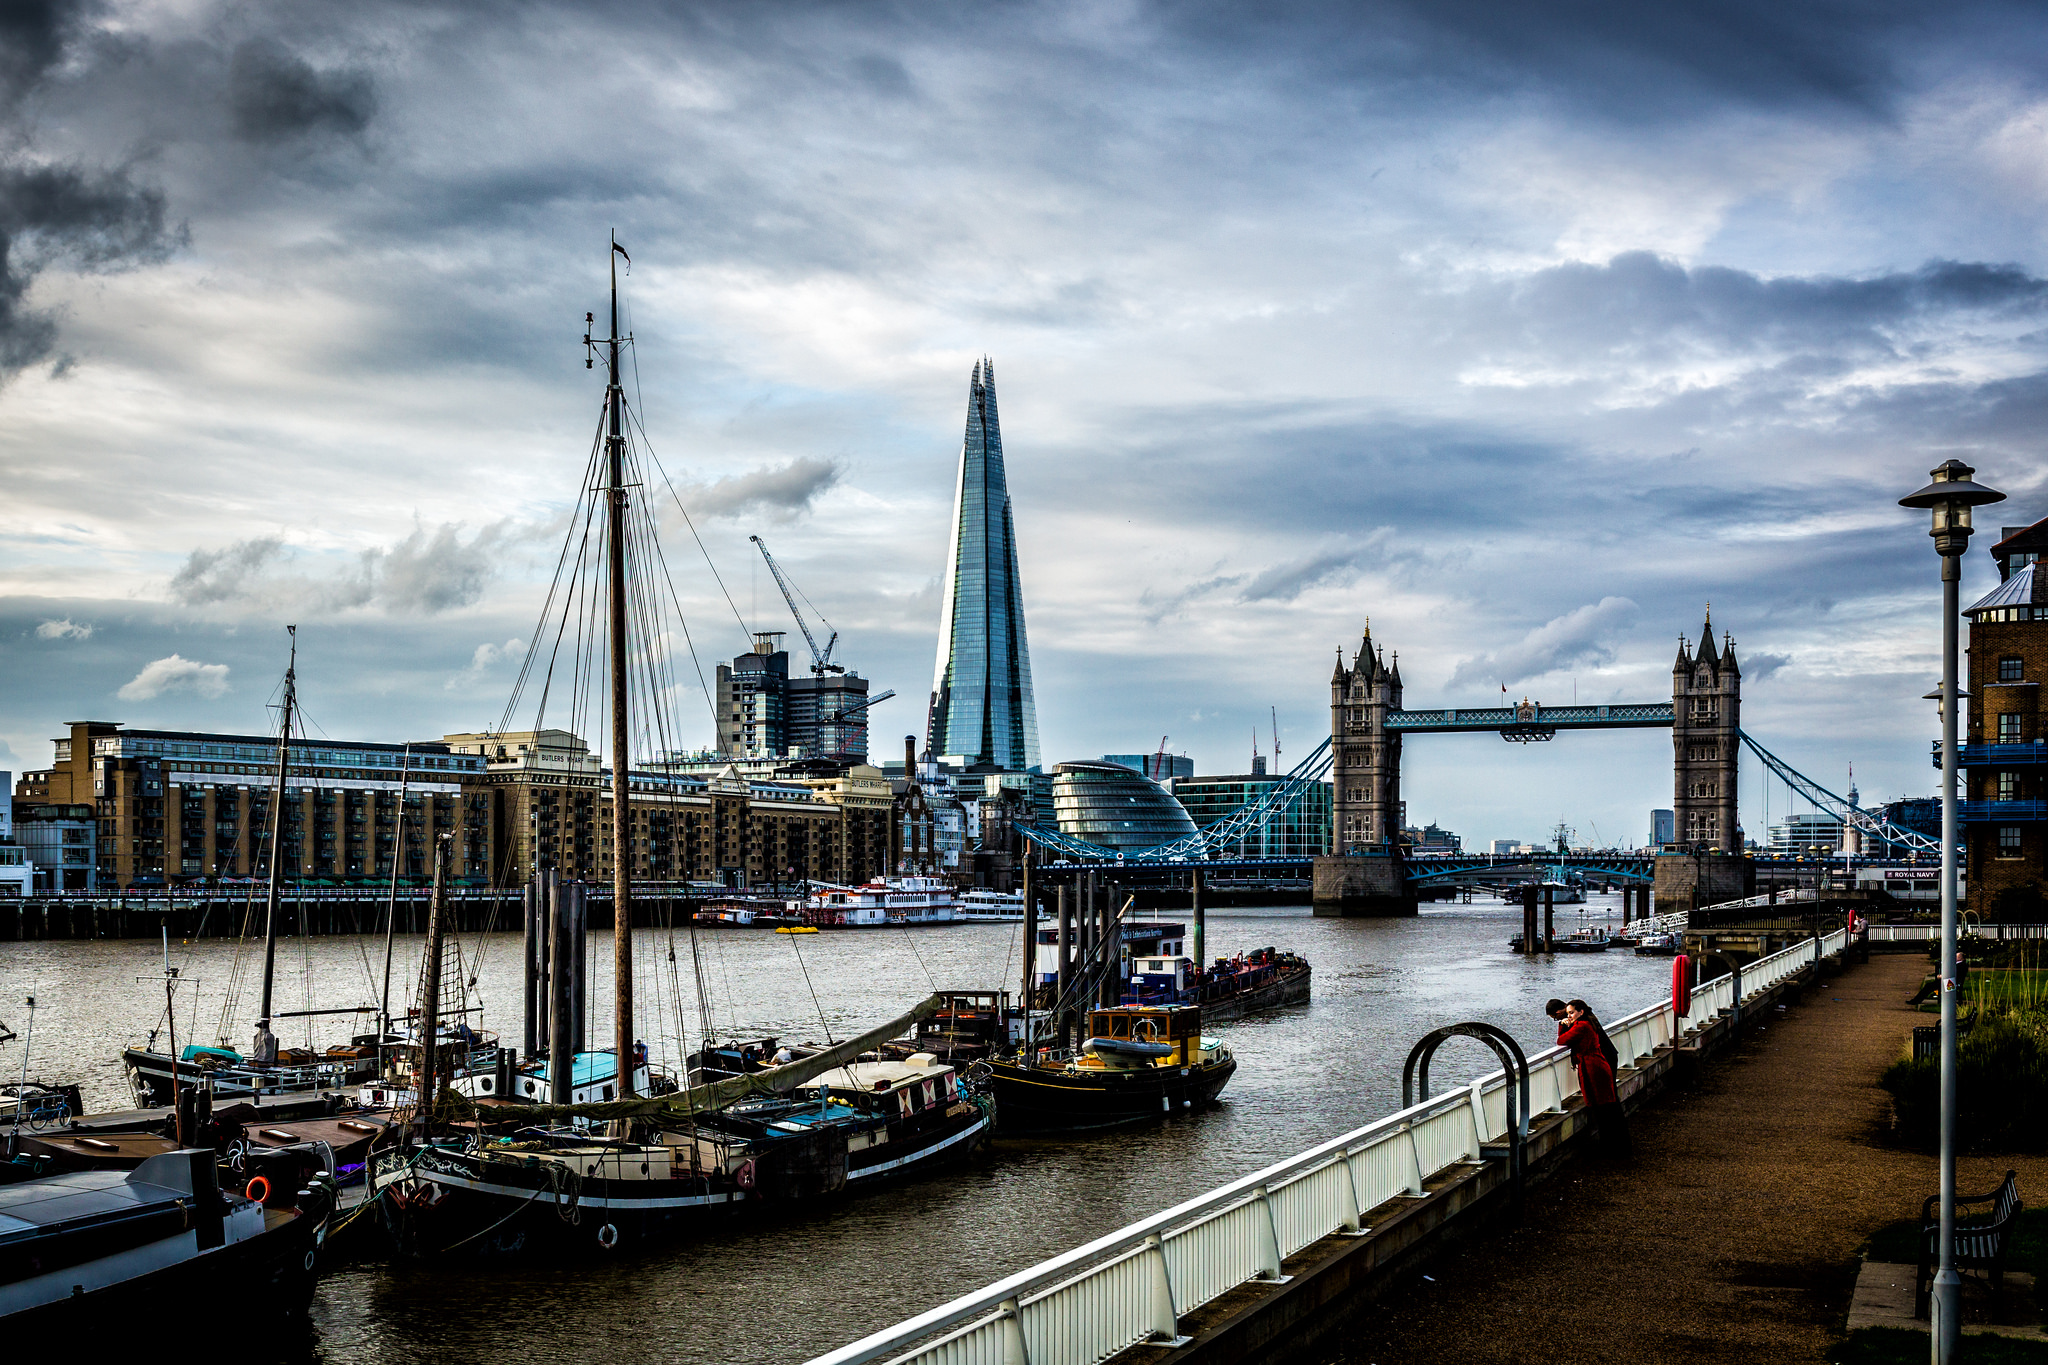 London Cityscape by Davide D'Amico on Flickr